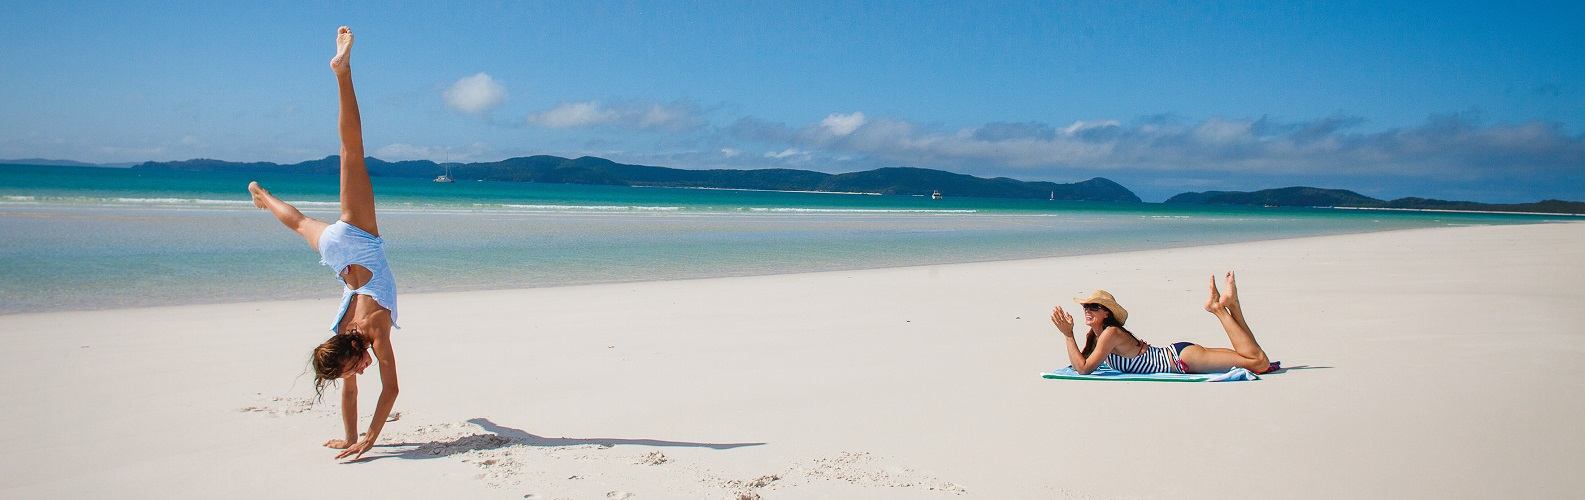 1 Day Whitsunday Islands Tour with Whitehaven Beach $190